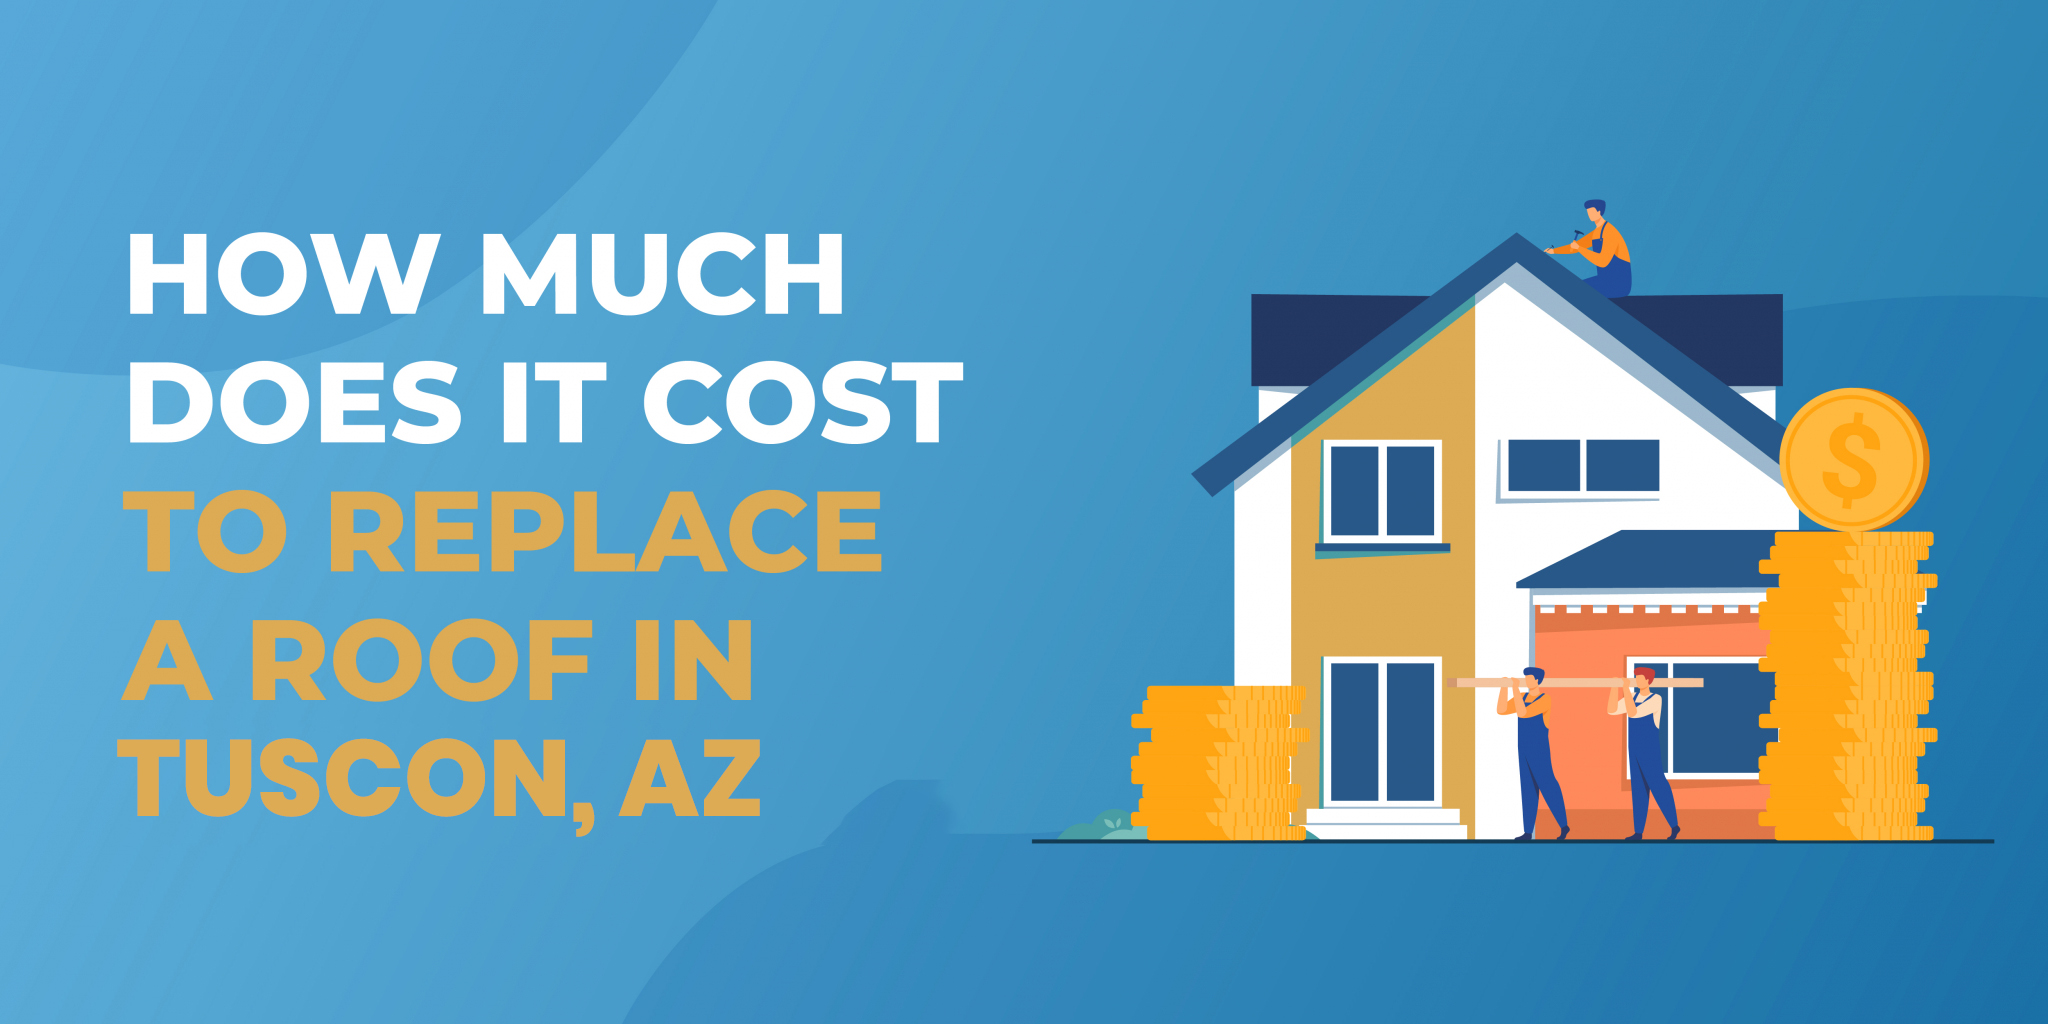 How Much Does It Cost to Replace a Roof in Tucson?